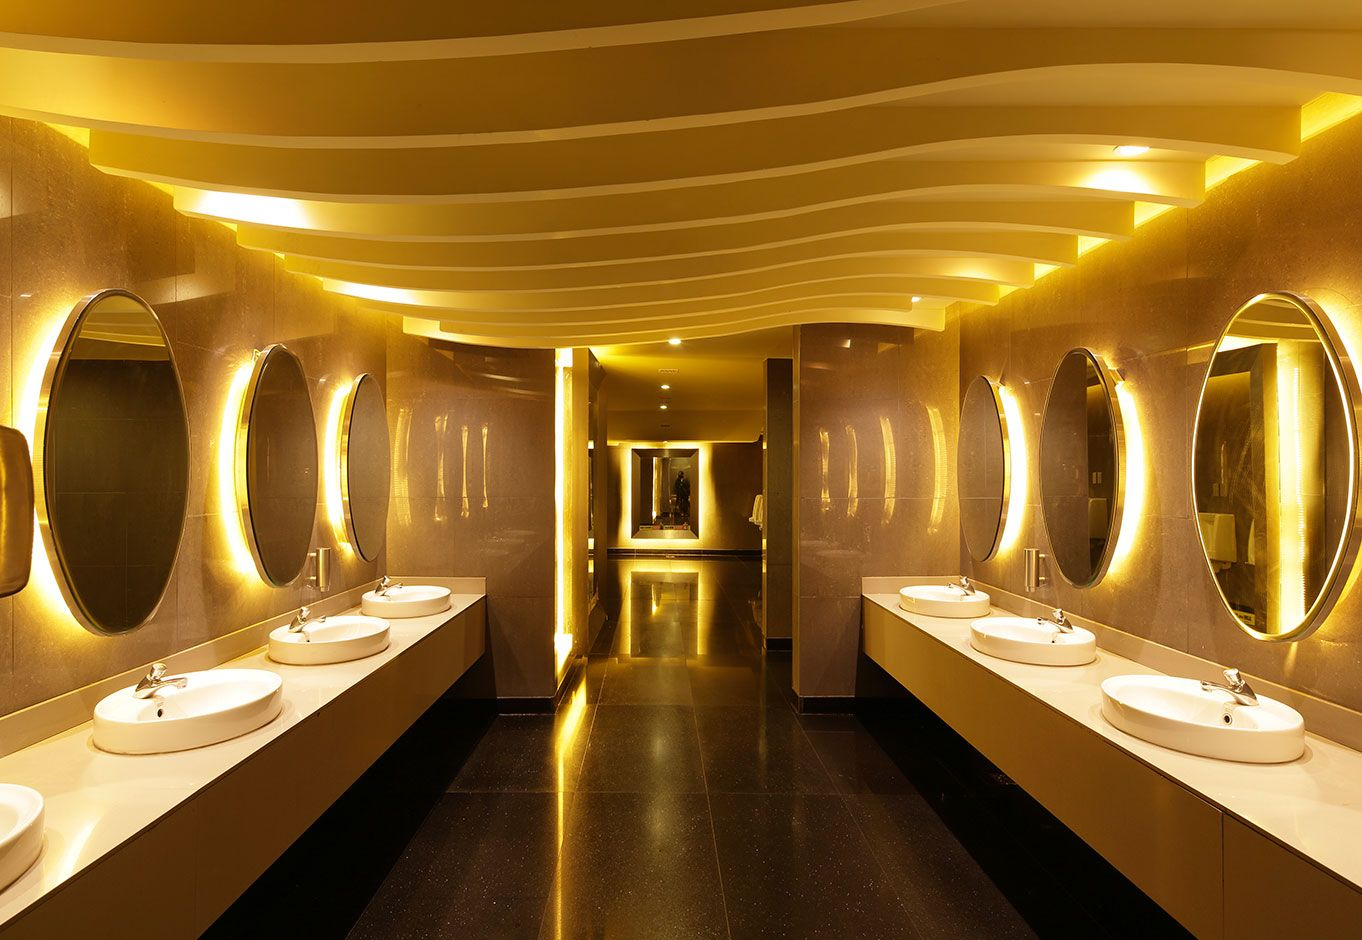 Pvr Cinemas Phoenix Marketcity Pune Bathrooms Toilets Pinterest Pvr Cinemas Toilet